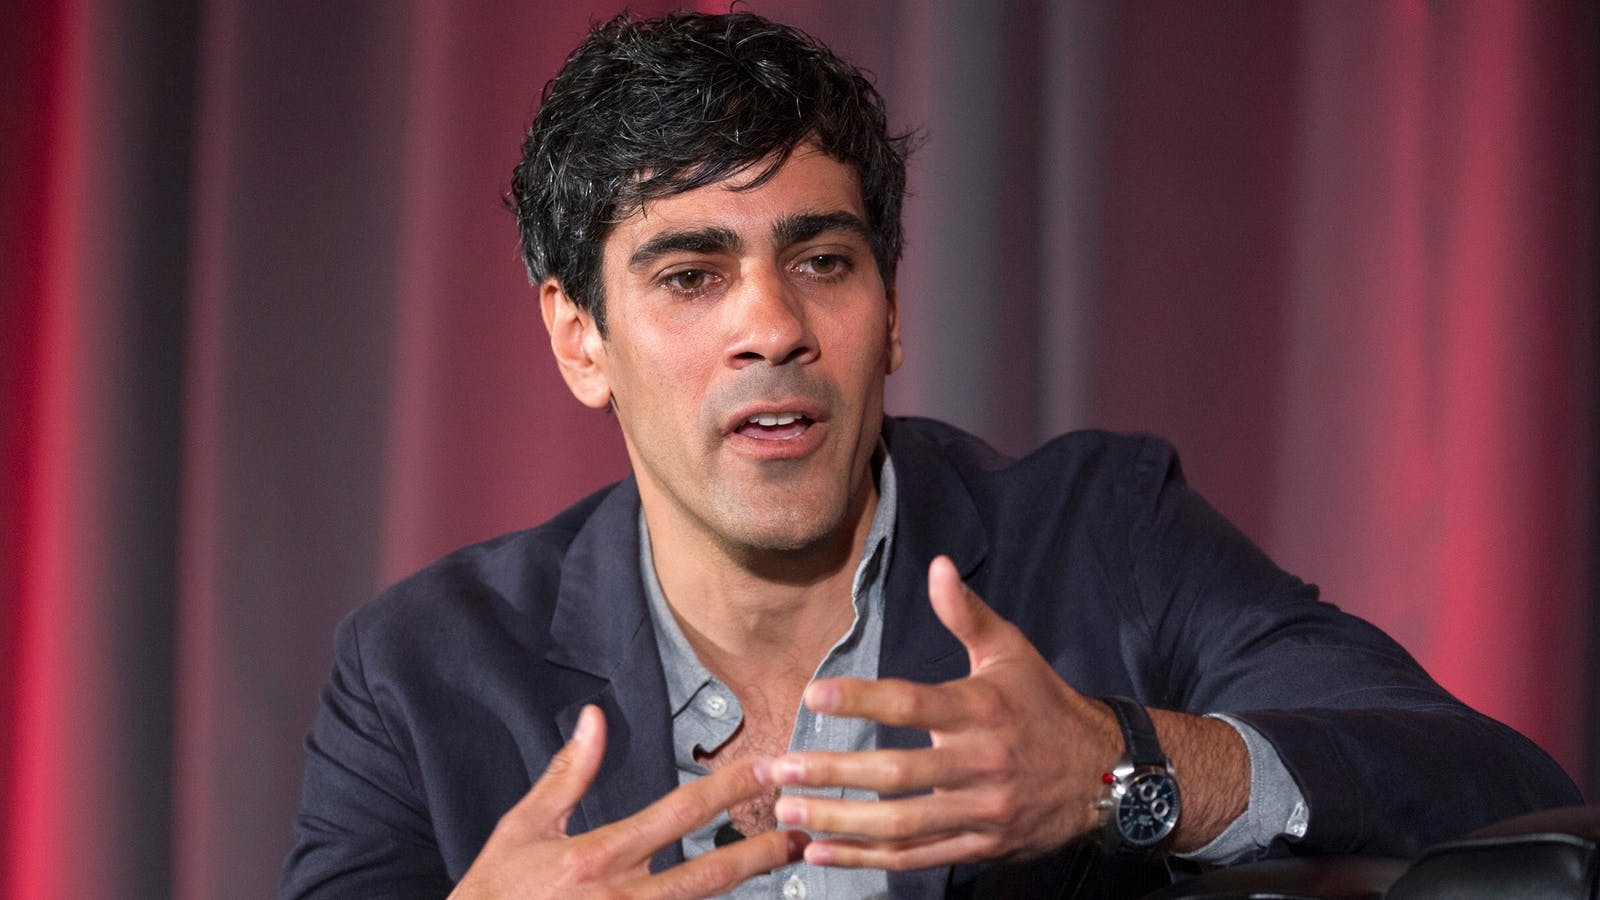 Yelp CEO Jeremy Stoppelman. Photo by Bloomberg.